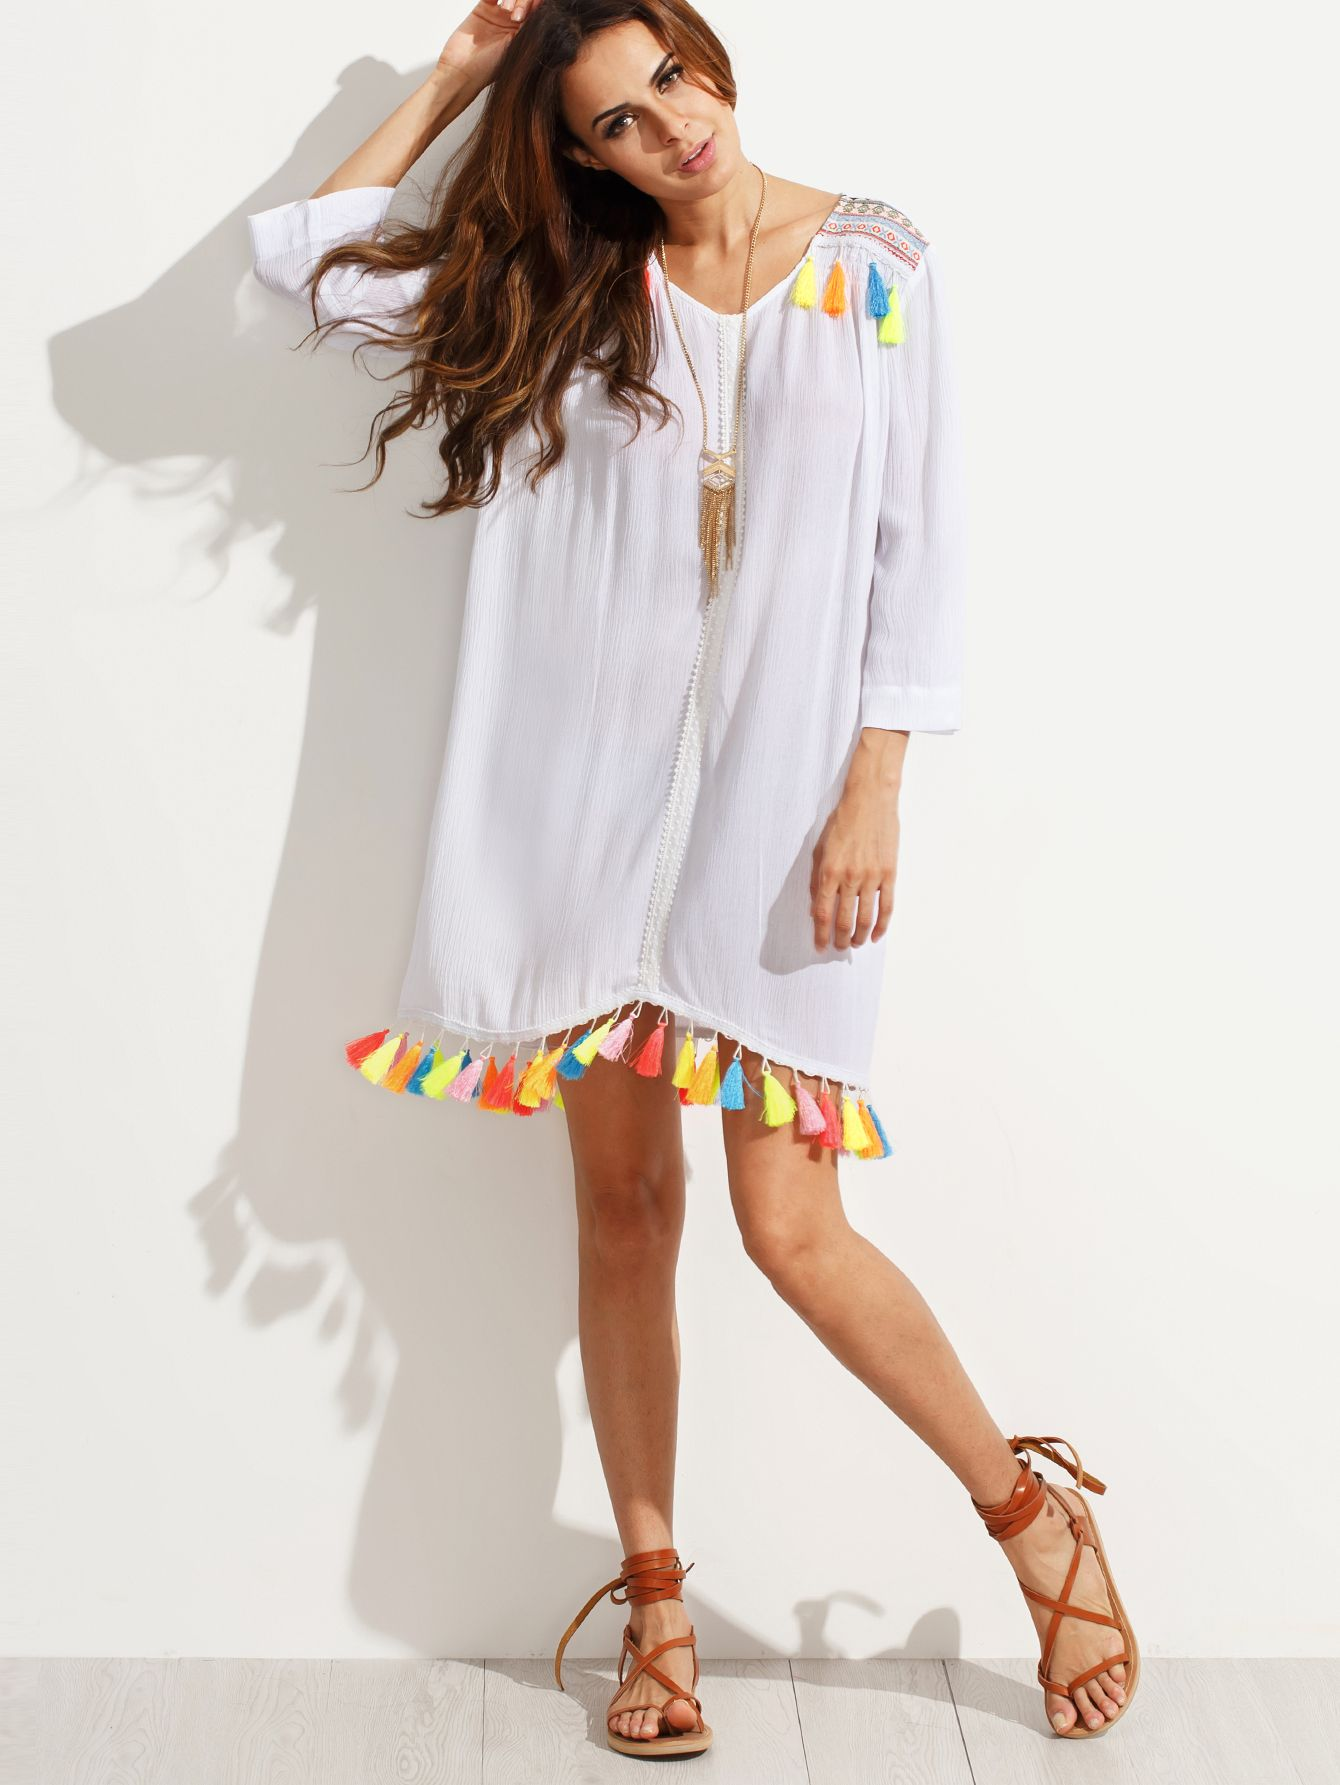 8707d6a3330cd Shop Colorful Tassel Trim Embroidered Shift Dress online. SheIn offers  Colorful Tassel Trim Embroidered Shift Dress   more to fit your fashionable  needs.